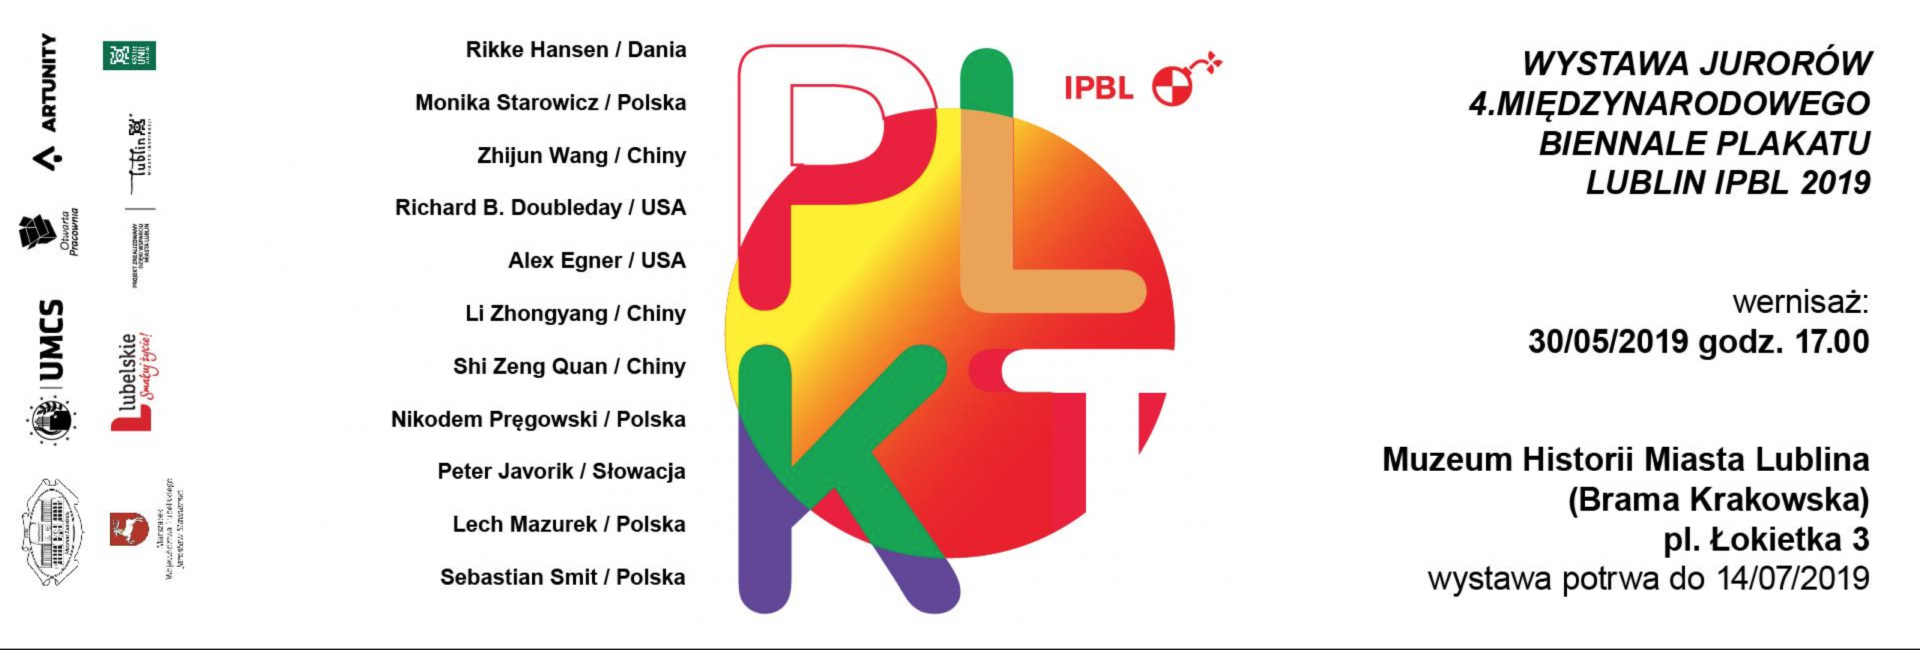 The exhibition of jurors and curators of the International Poster Biennale Lublin 2019